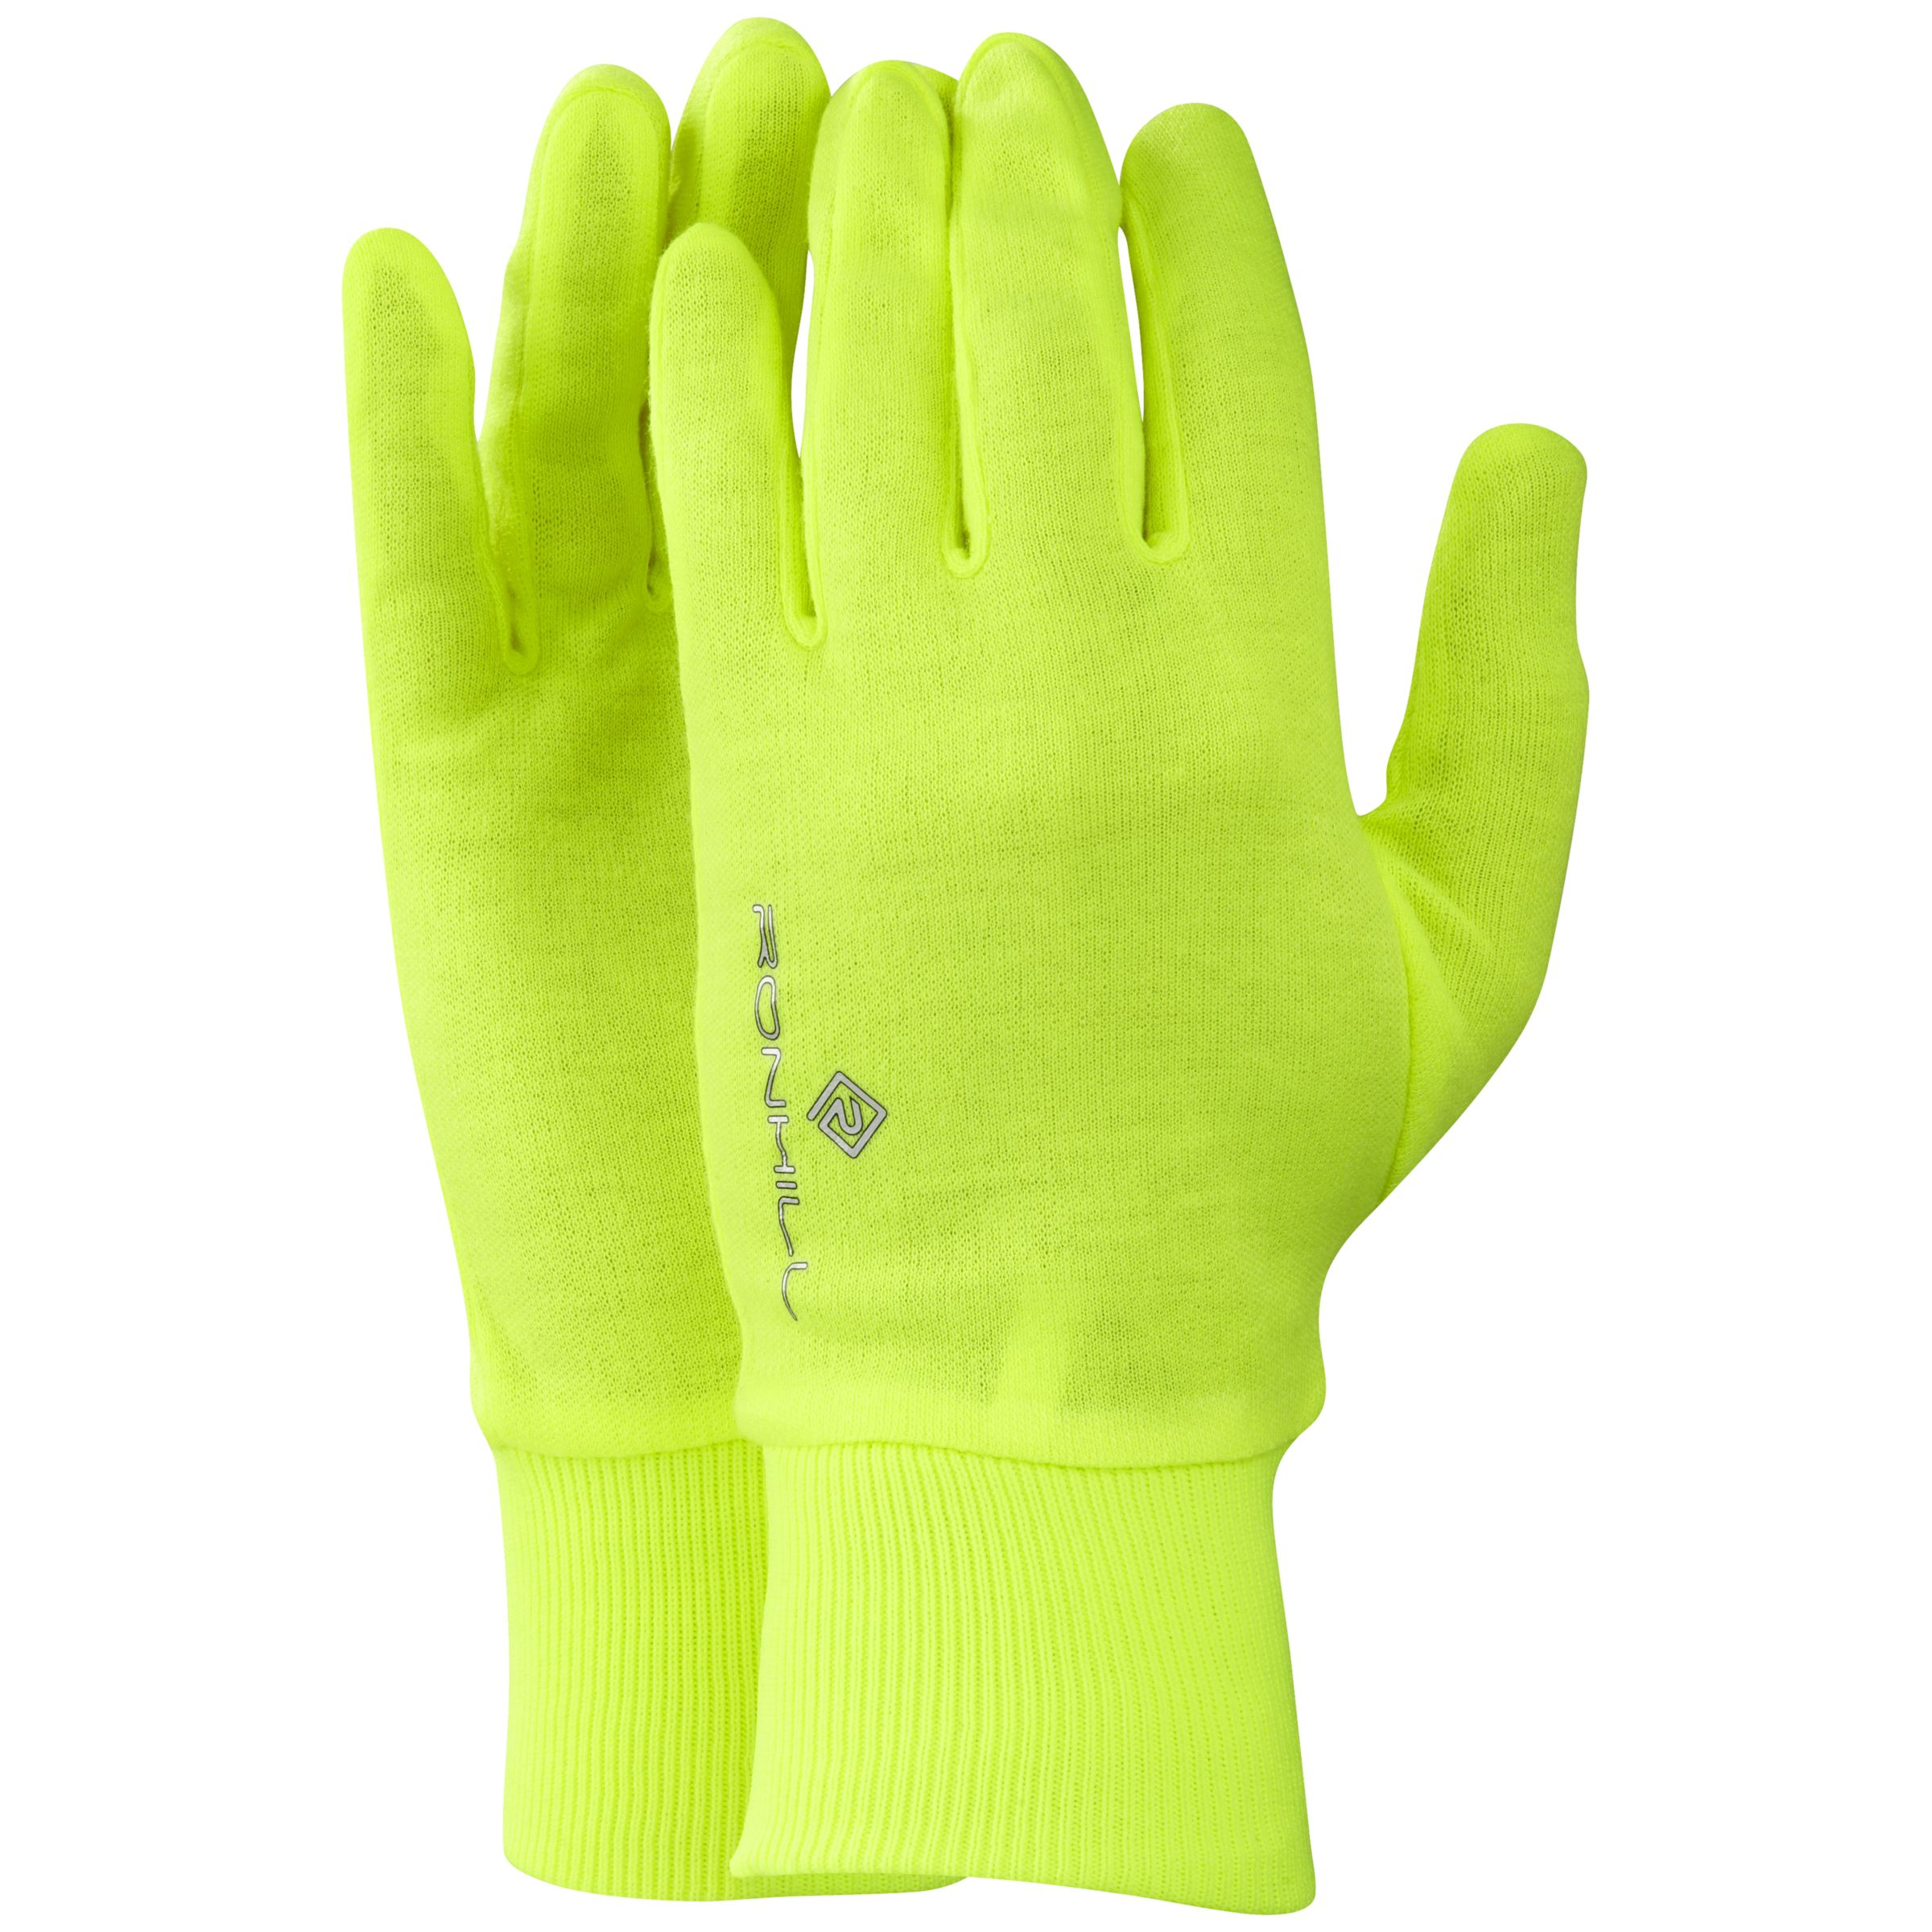 Ronhill Thermal Lite Glove, Yellow